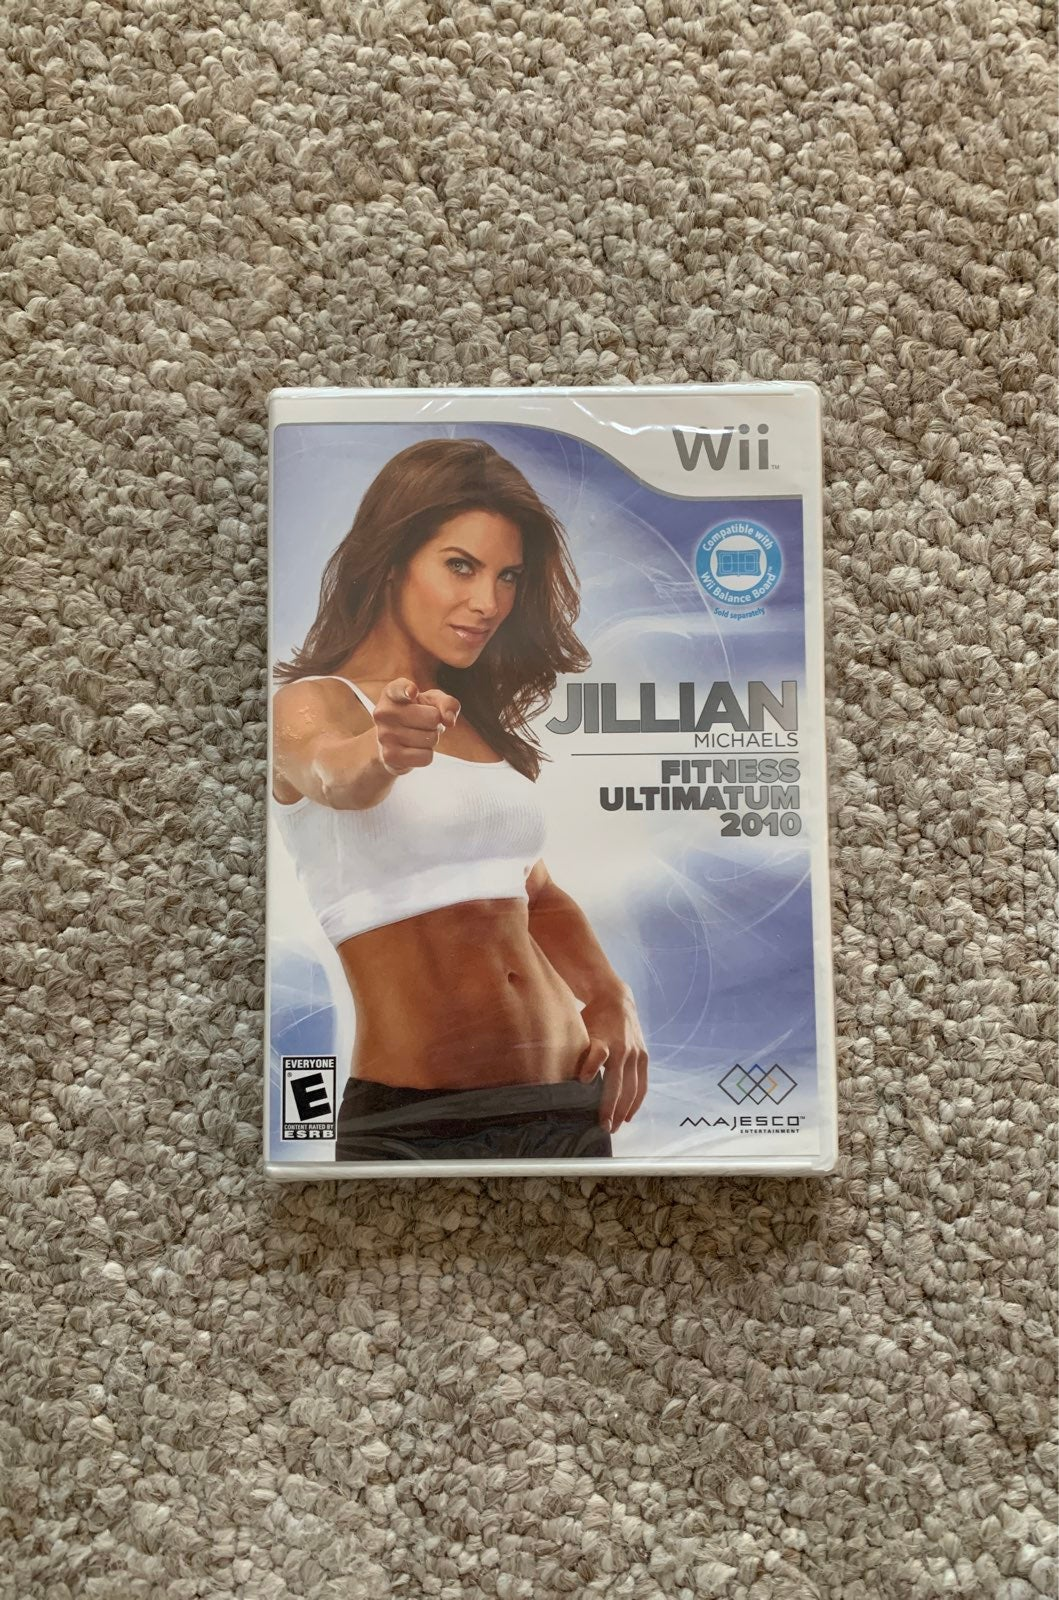 Wii Jillian Michaels Fitness Ultimatum